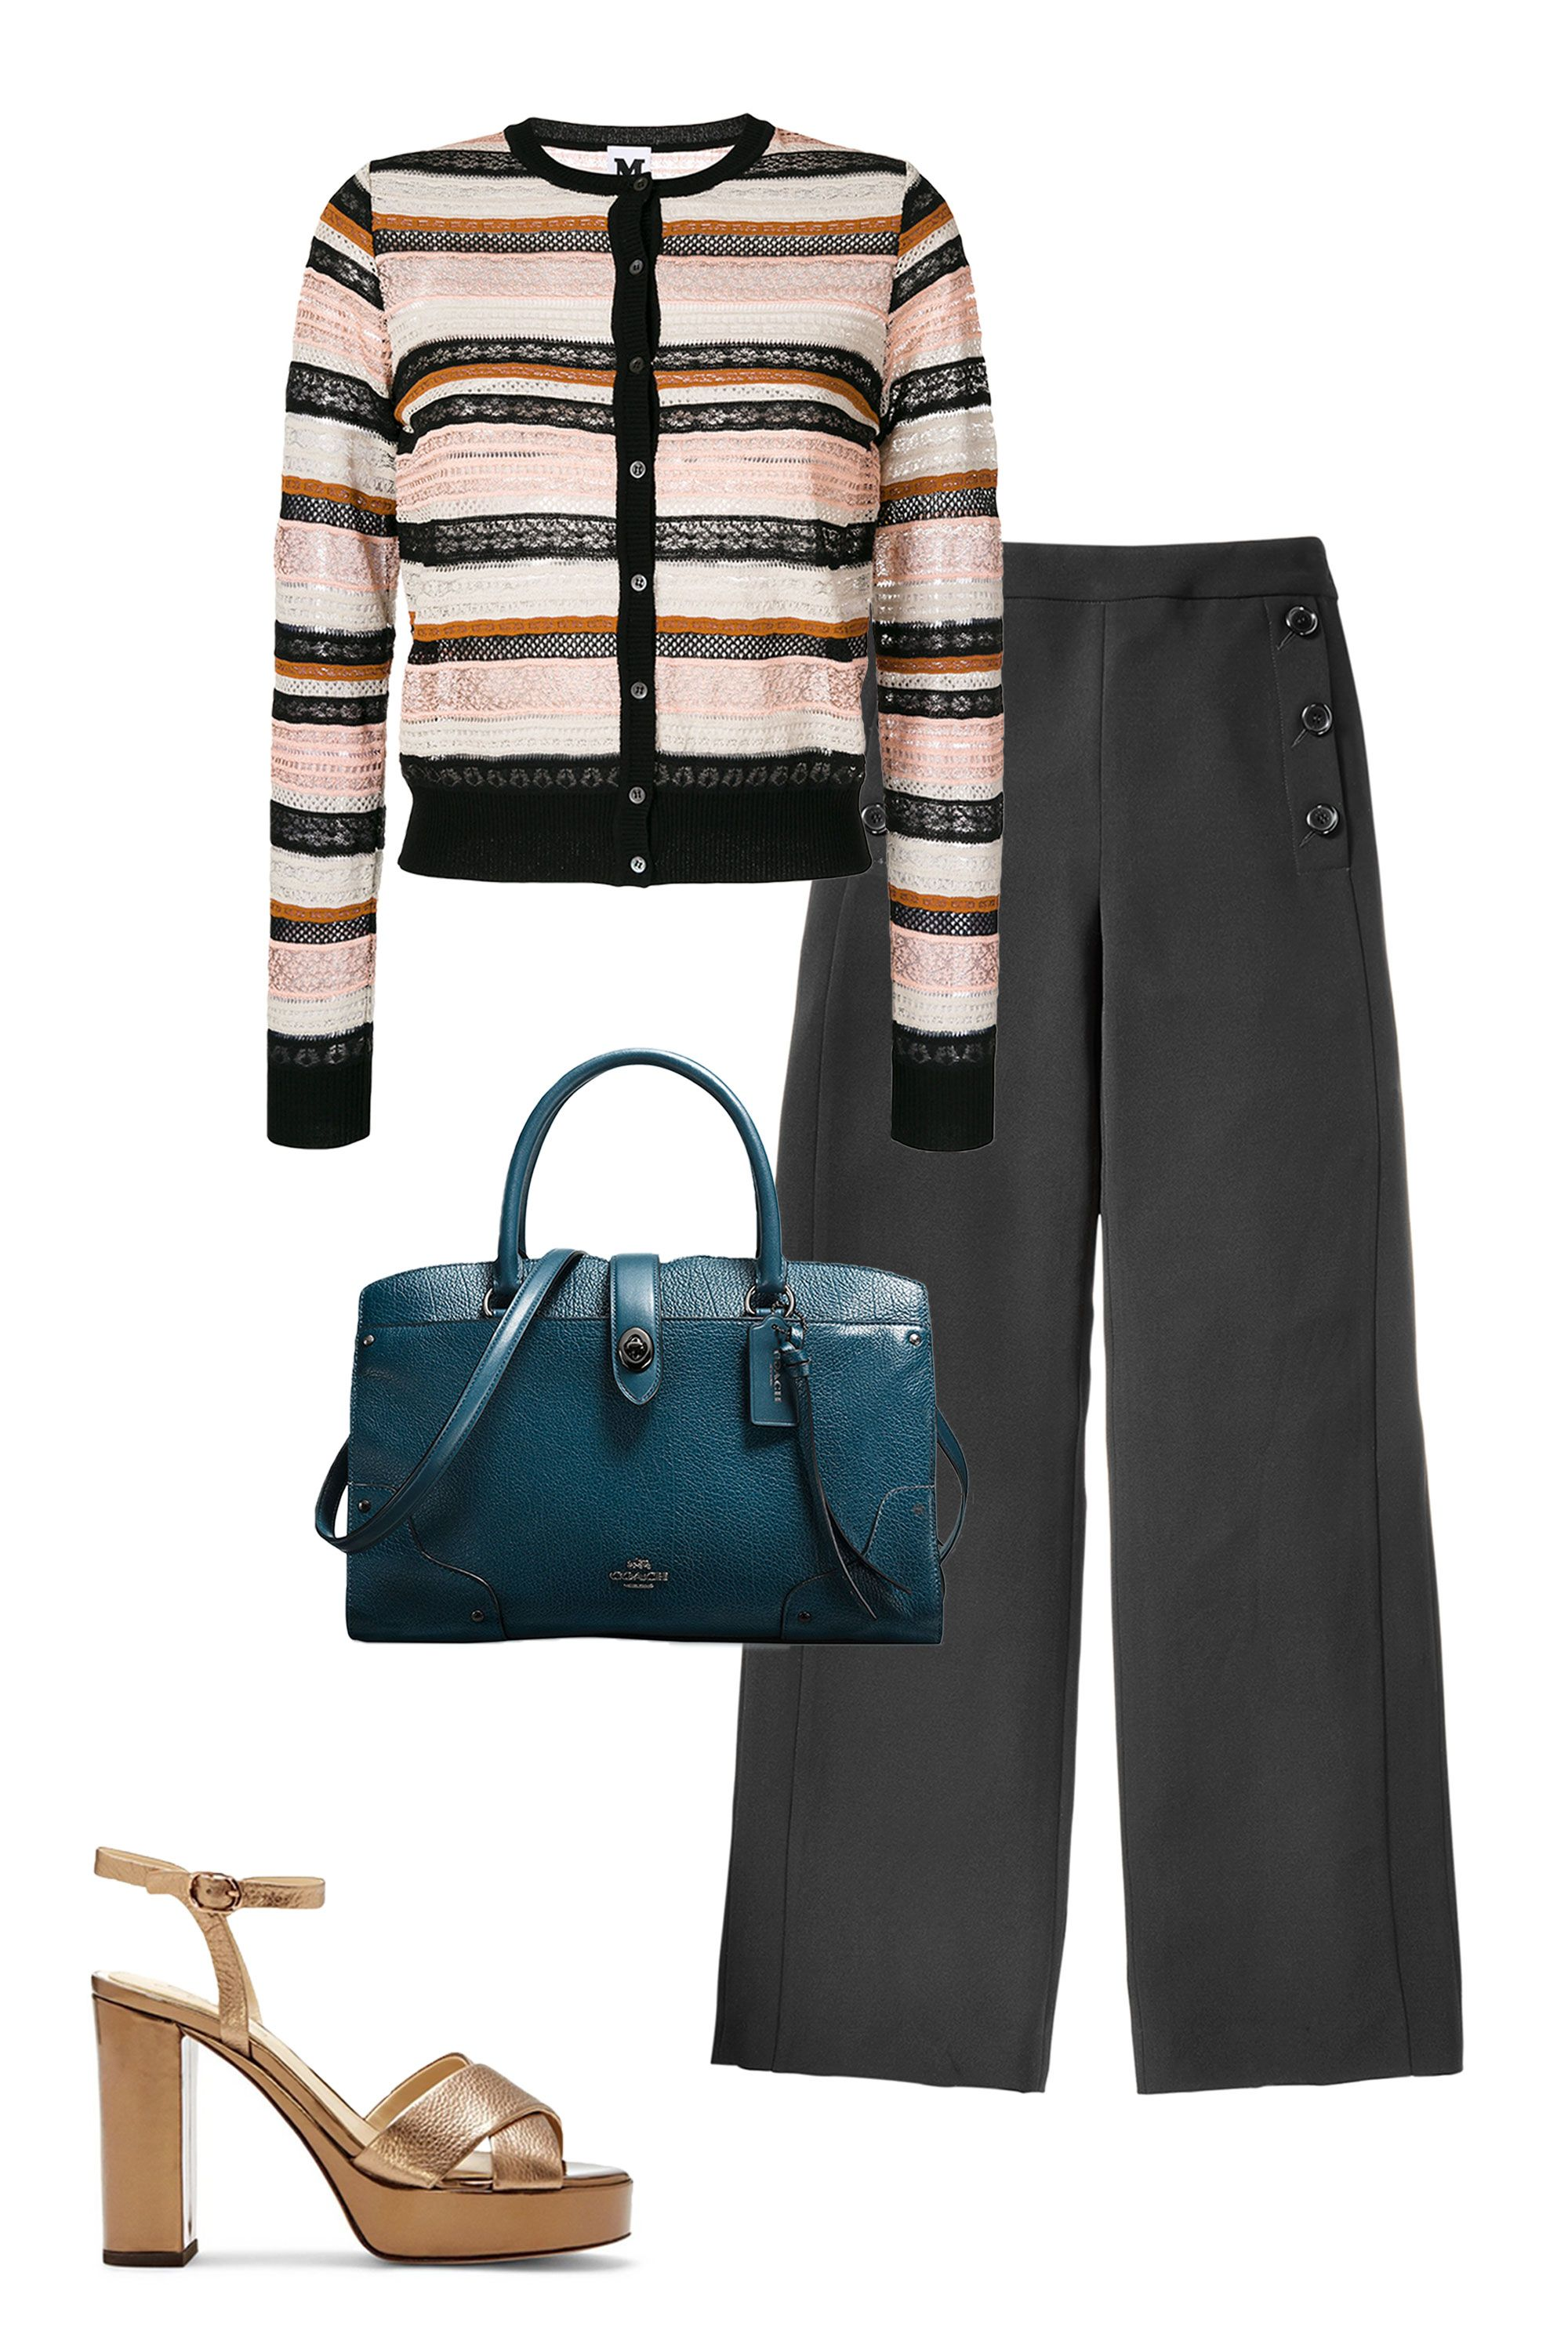 "<p>The right pair of black pants are anything but boring; choose a pair with an updated, wide-leg silhouette and oversized buttons to keep things fresh. When topped with a textural striped cardigan and luxe leather accessories in unexpected colors, the result is <em data-redactor-tag=""em"" data-verified=""redactor"">definitely</em><span class=""redactor-invisible-space"" data-verified=""redactor"" data-redactor-tag=""span"" data-redactor-class=""redactor-invisible-space""> not</span> blah.</p><p><strong data-redactor-tag=""strong"" data-verified=""redactor"">BUY IT:</strong><span class=""redactor-invisible-space"" data-verified=""redactor"" data-redactor-tag=""span"" data-redactor-class=""redactor-invisible-space""> M Missoni cardigan, $436; <a href=""https://www.farfetch.com/shopping/women/m-missoni-striped-cardigan-item-12263266.aspx?storeid=9442&from=listing&tglmdl=1"" target=""_blank"" data-tracking-id=""recirc-text-link"">farfetch.com</a>. DKNY pants, $49; <a href=""https://www.macys.com/shop/product/dkny-crepe-wide-leg-pants?ID=4945307&cm_mmc=carat_dis-_-sep2_nopro_auth_rtw_ffash_tentpole_display_w7080033_11696-_-1339154-_-09052017_10052017"" target=""_blank"" data-tracking-id=""recirc-text-link"">macys.com</a>. Vince Camuto sandal, $160; <a href=""http://www.vincecamuto.com/imagine-vince-camuto-valora2-%E2%80%93-metallic-platform-sandal/IM-VALORA2.html"" target=""_blank"" data-tracking-id=""recirc-text-link"">vincecamuto.com</a>; Coach satchel, $395; <a href=""https://www.macys.com/shop/product/coach-mercer-satchel-30-in-mixed-leather-with-whiplash-detail?ID=4552237&CategoryID=46013#fn=BRAND=COACH&sp=1&spc=30&ruleId=105%7CBS&slotId=28"" target=""_blank"" data-tracking-id=""recirc-text-link"">macys.com</a></span></p>"